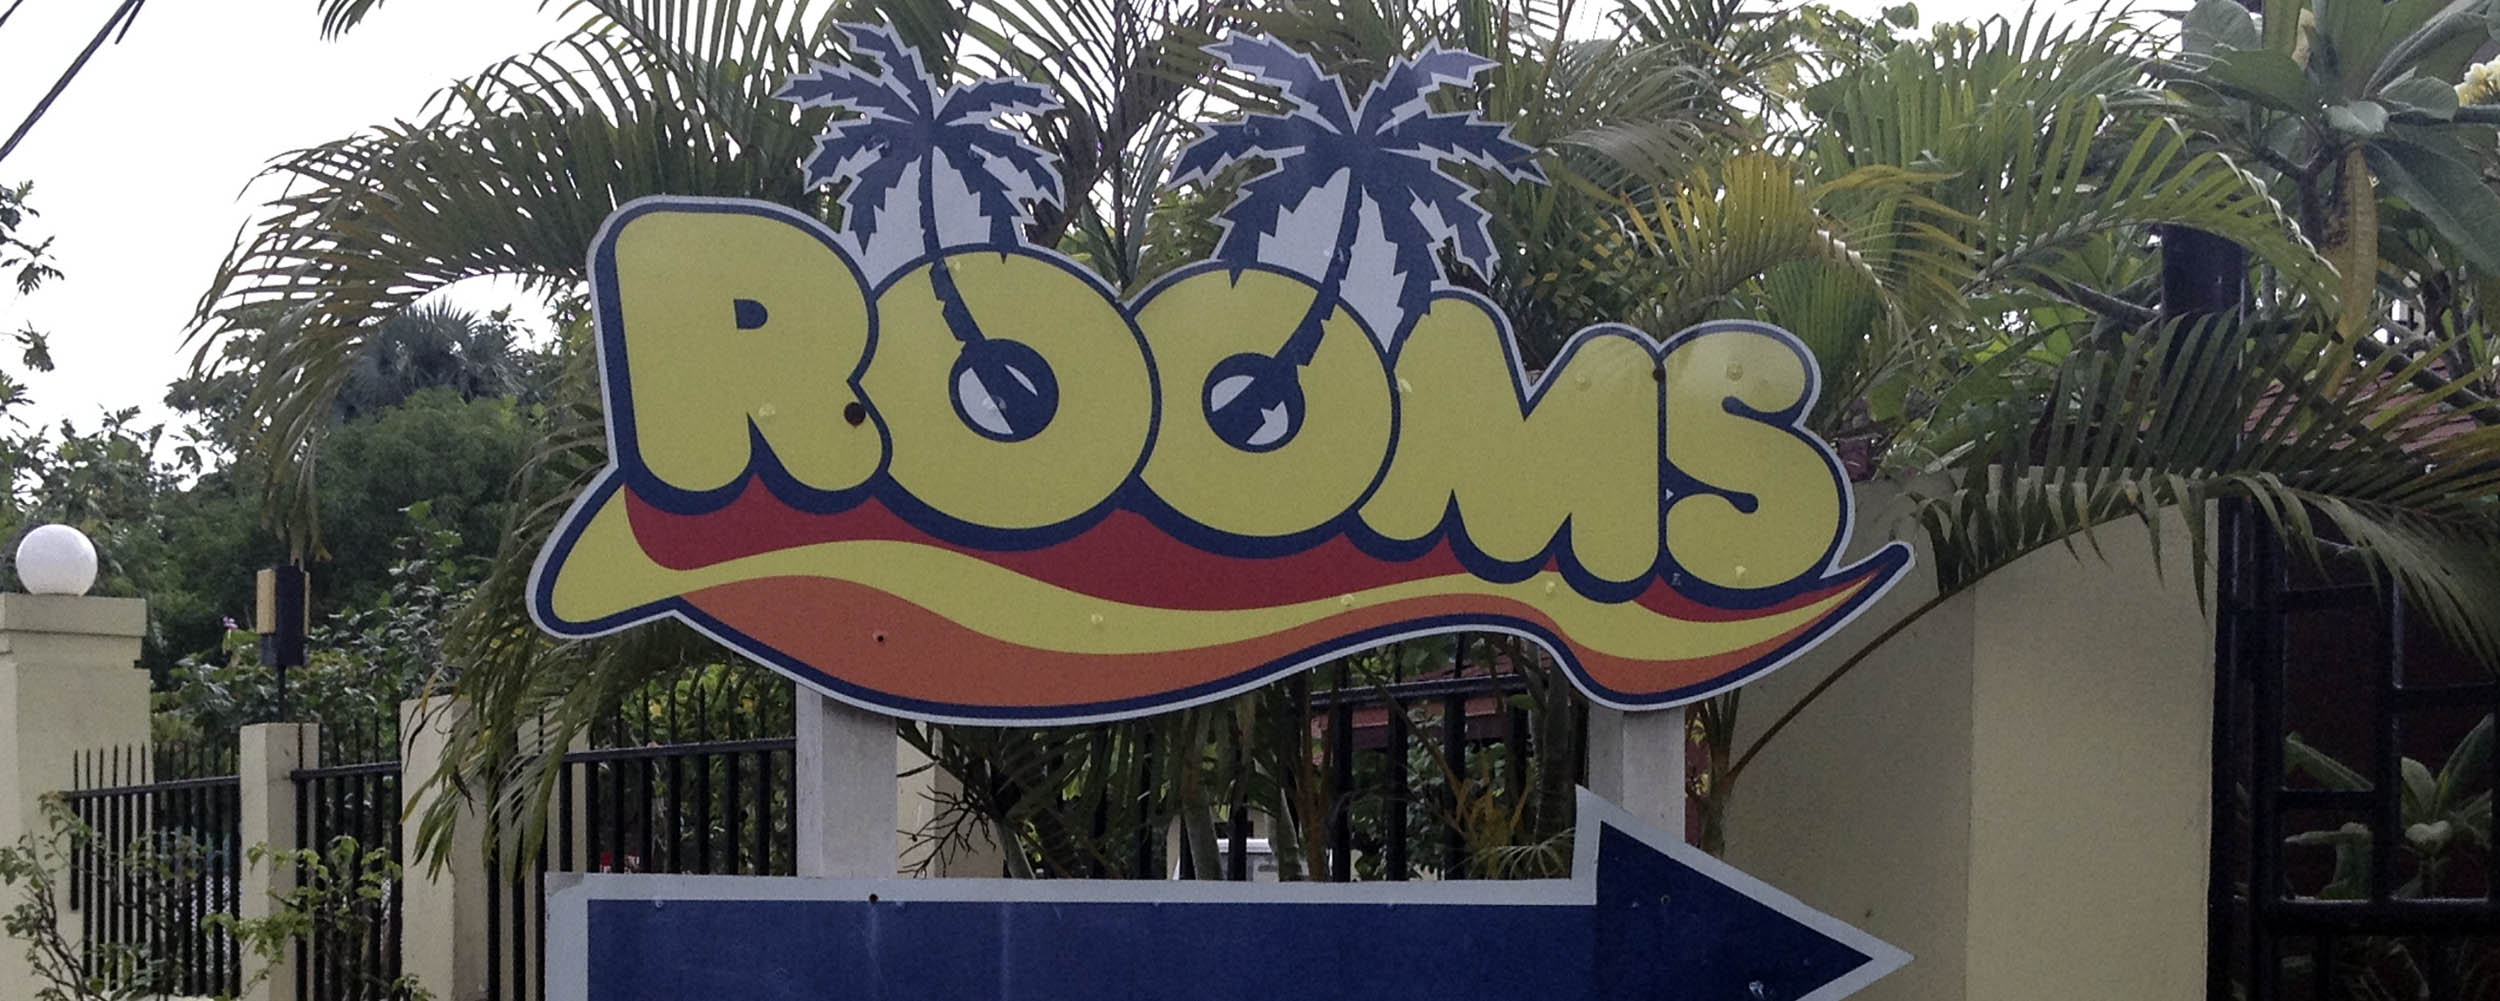 Rooms - Negril Jamaica